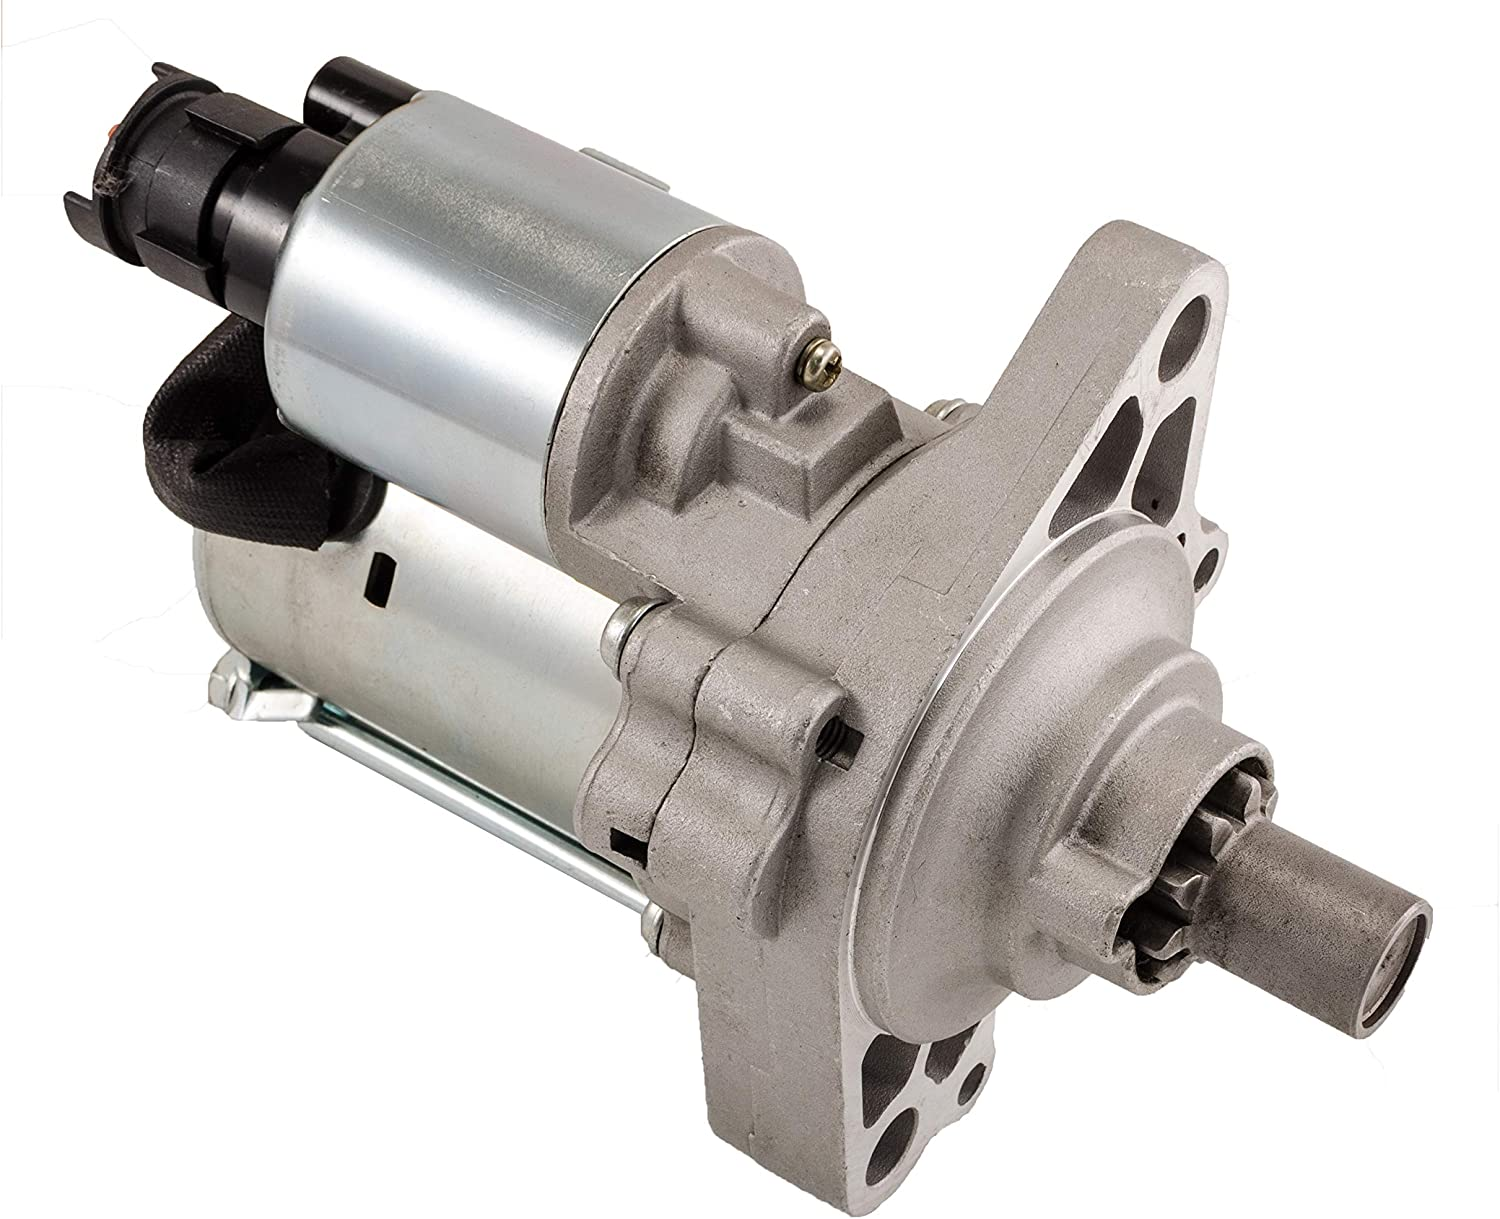 New Starter 17729 for 1998 1999 2000 2001 2002 Honda Accord 2.3L 98 99 Acura CL